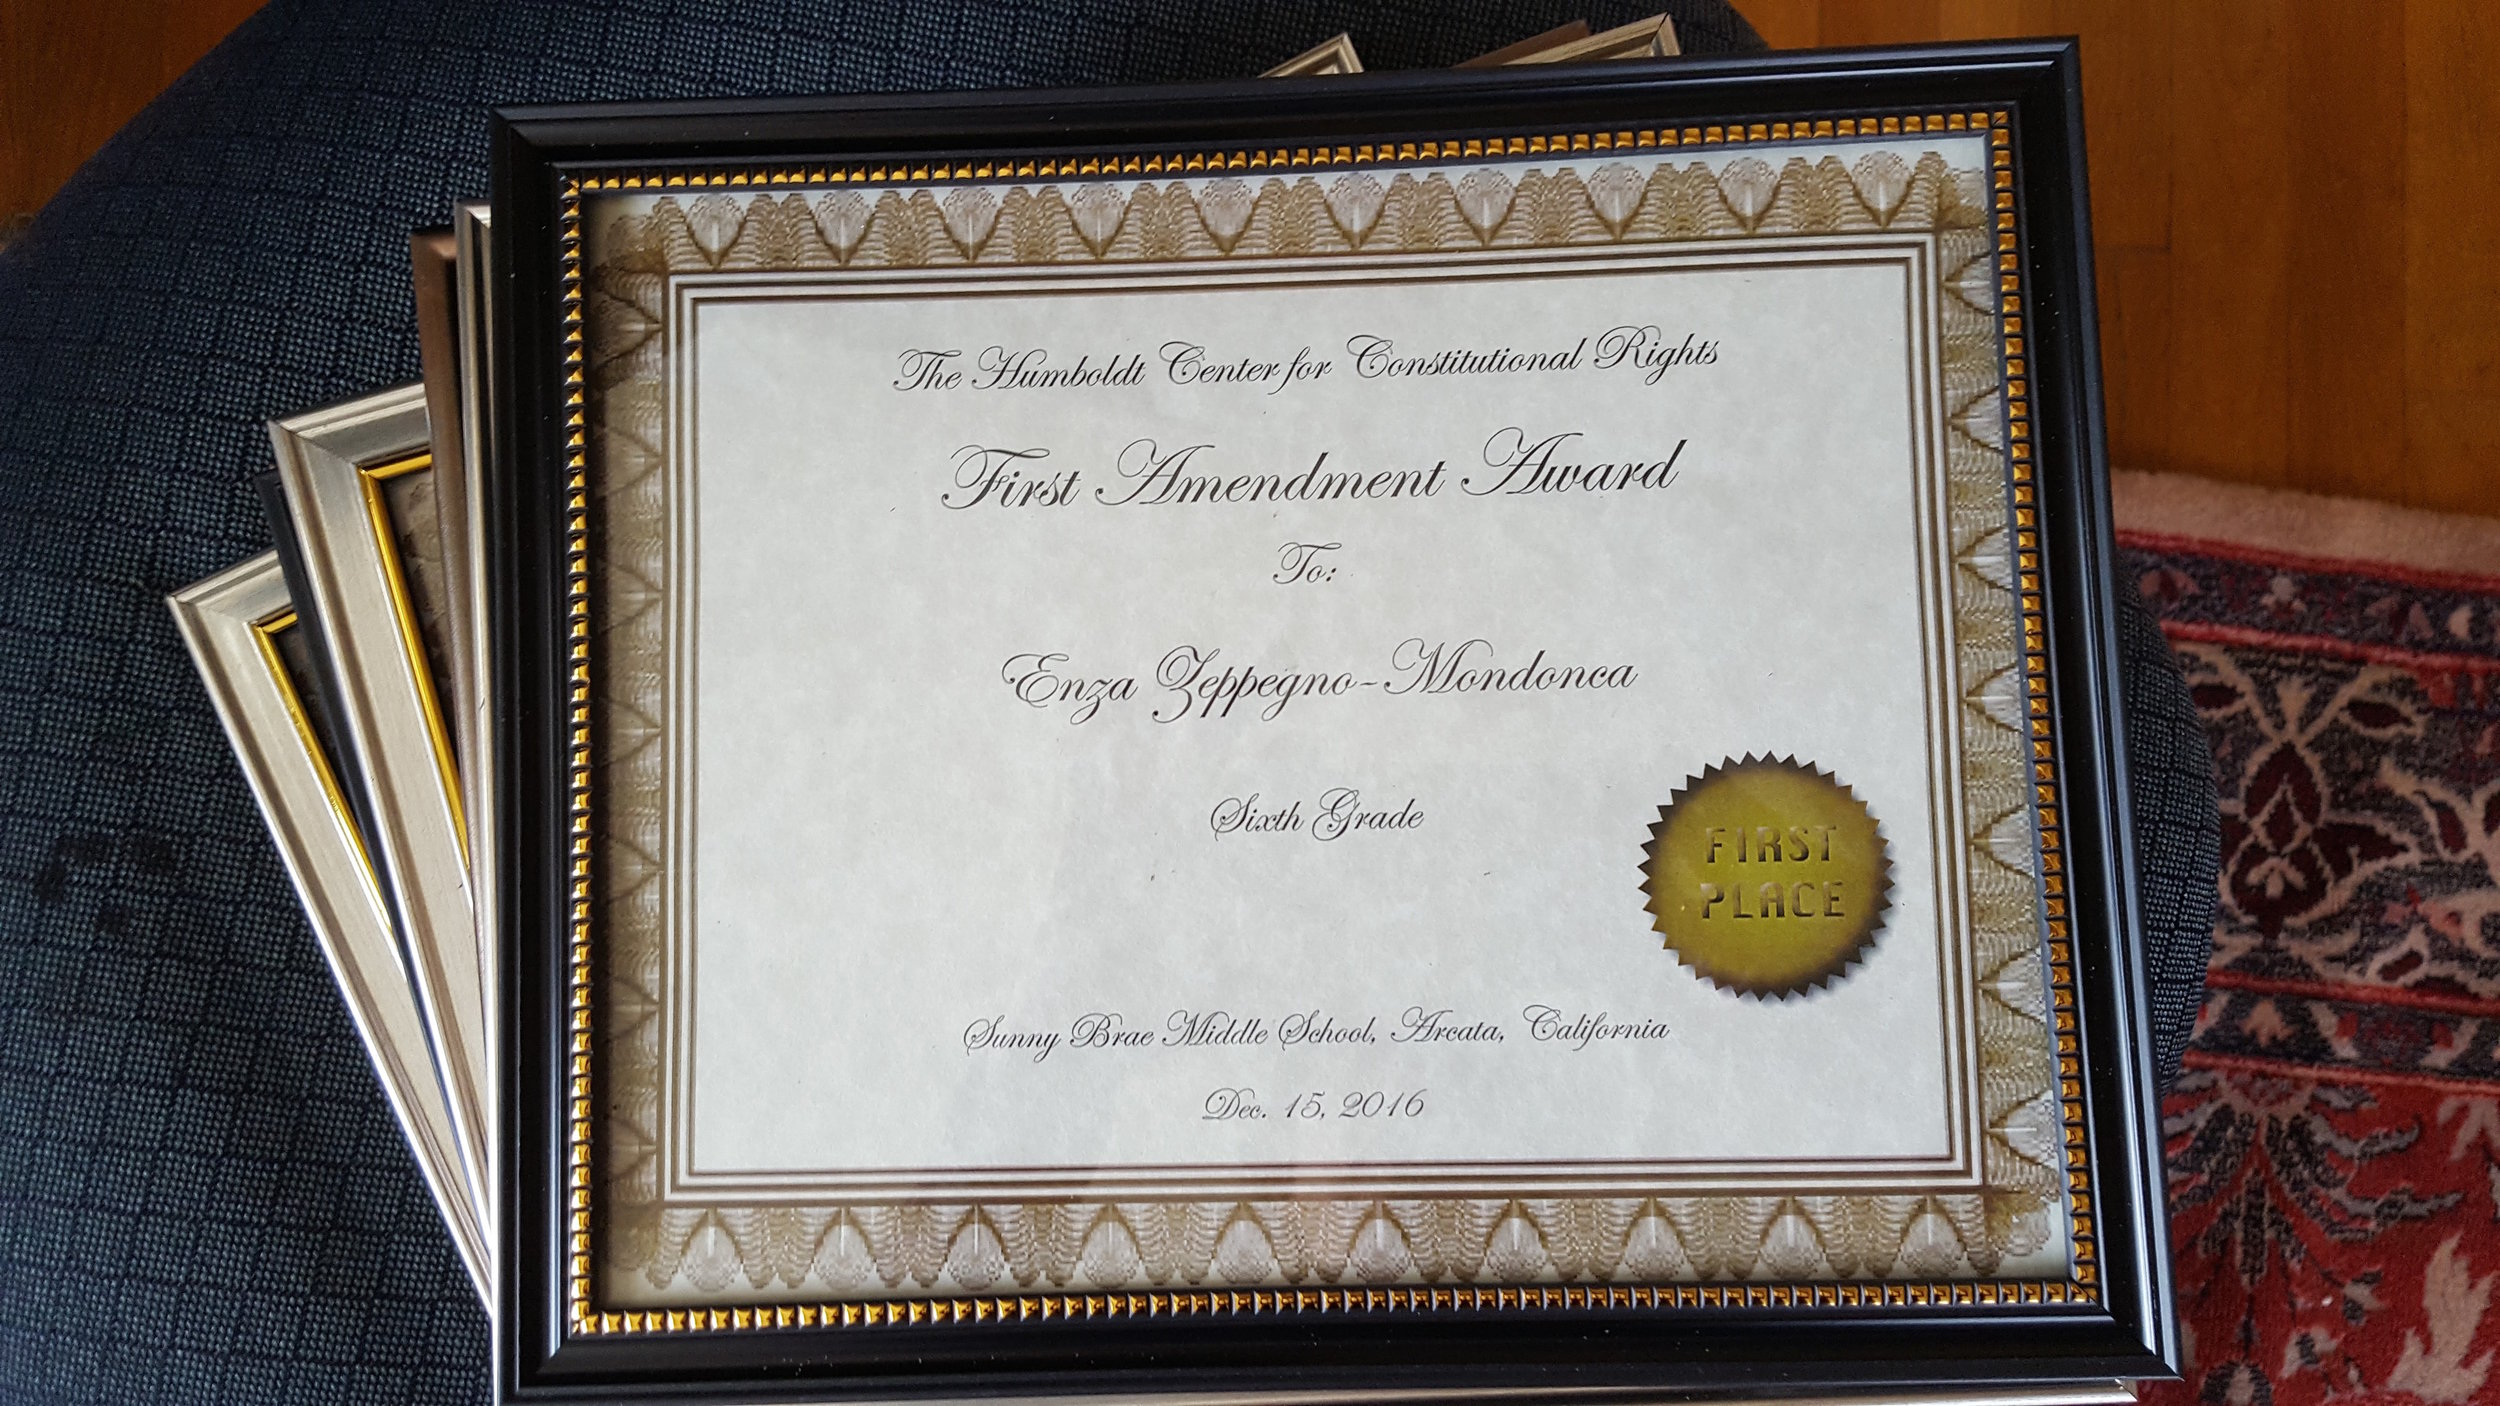 An certificate awarded to a student at Sunny Brae Middle School for wining the HumRights First Amendment essay contest in 2016.